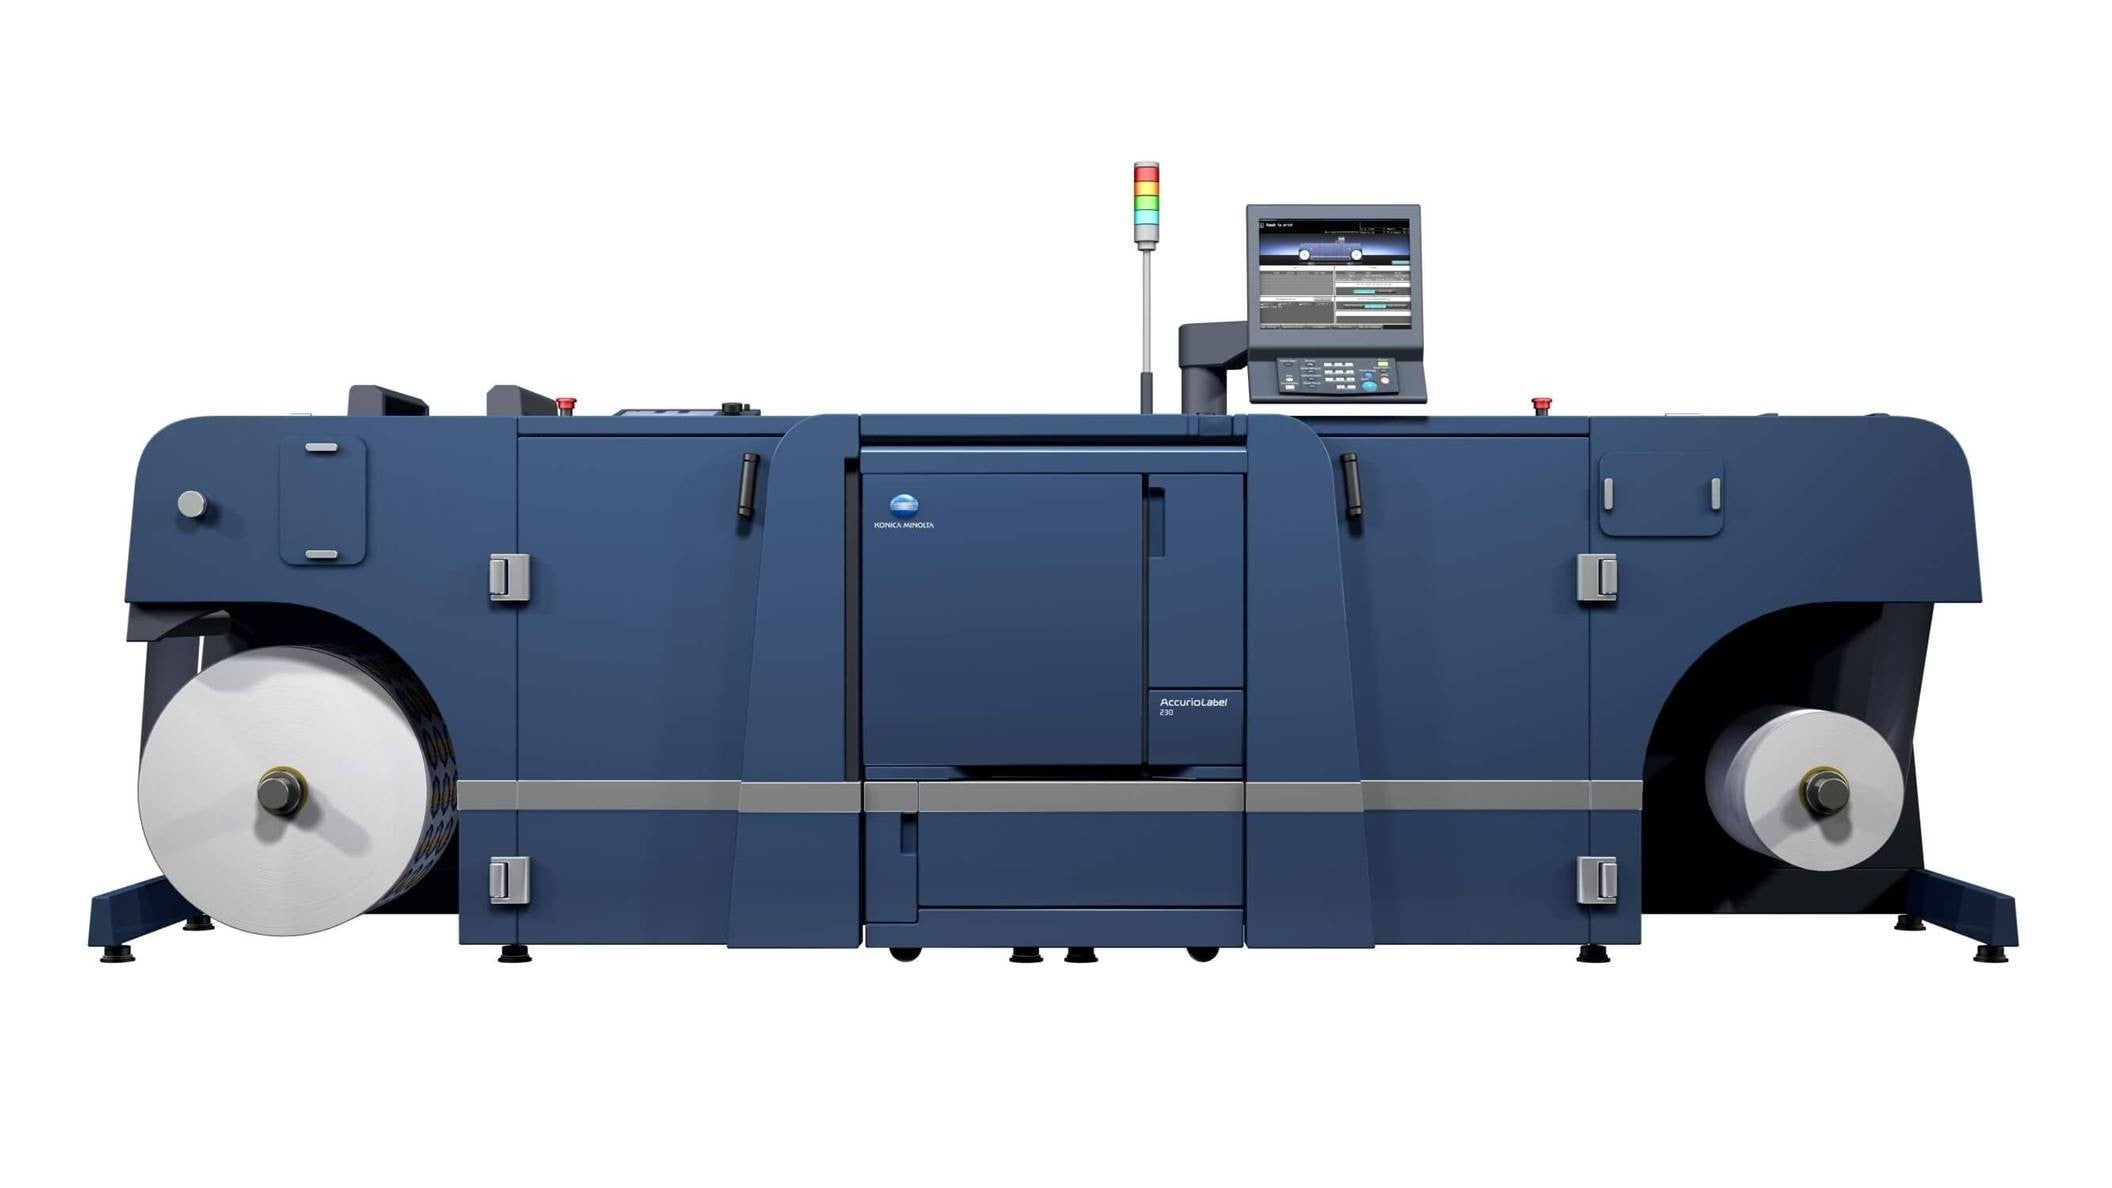 Konica Minolta is pleased to announce that the AccurioLabel series marked another important milestone: the 500th unit shipped since launched in 2016.